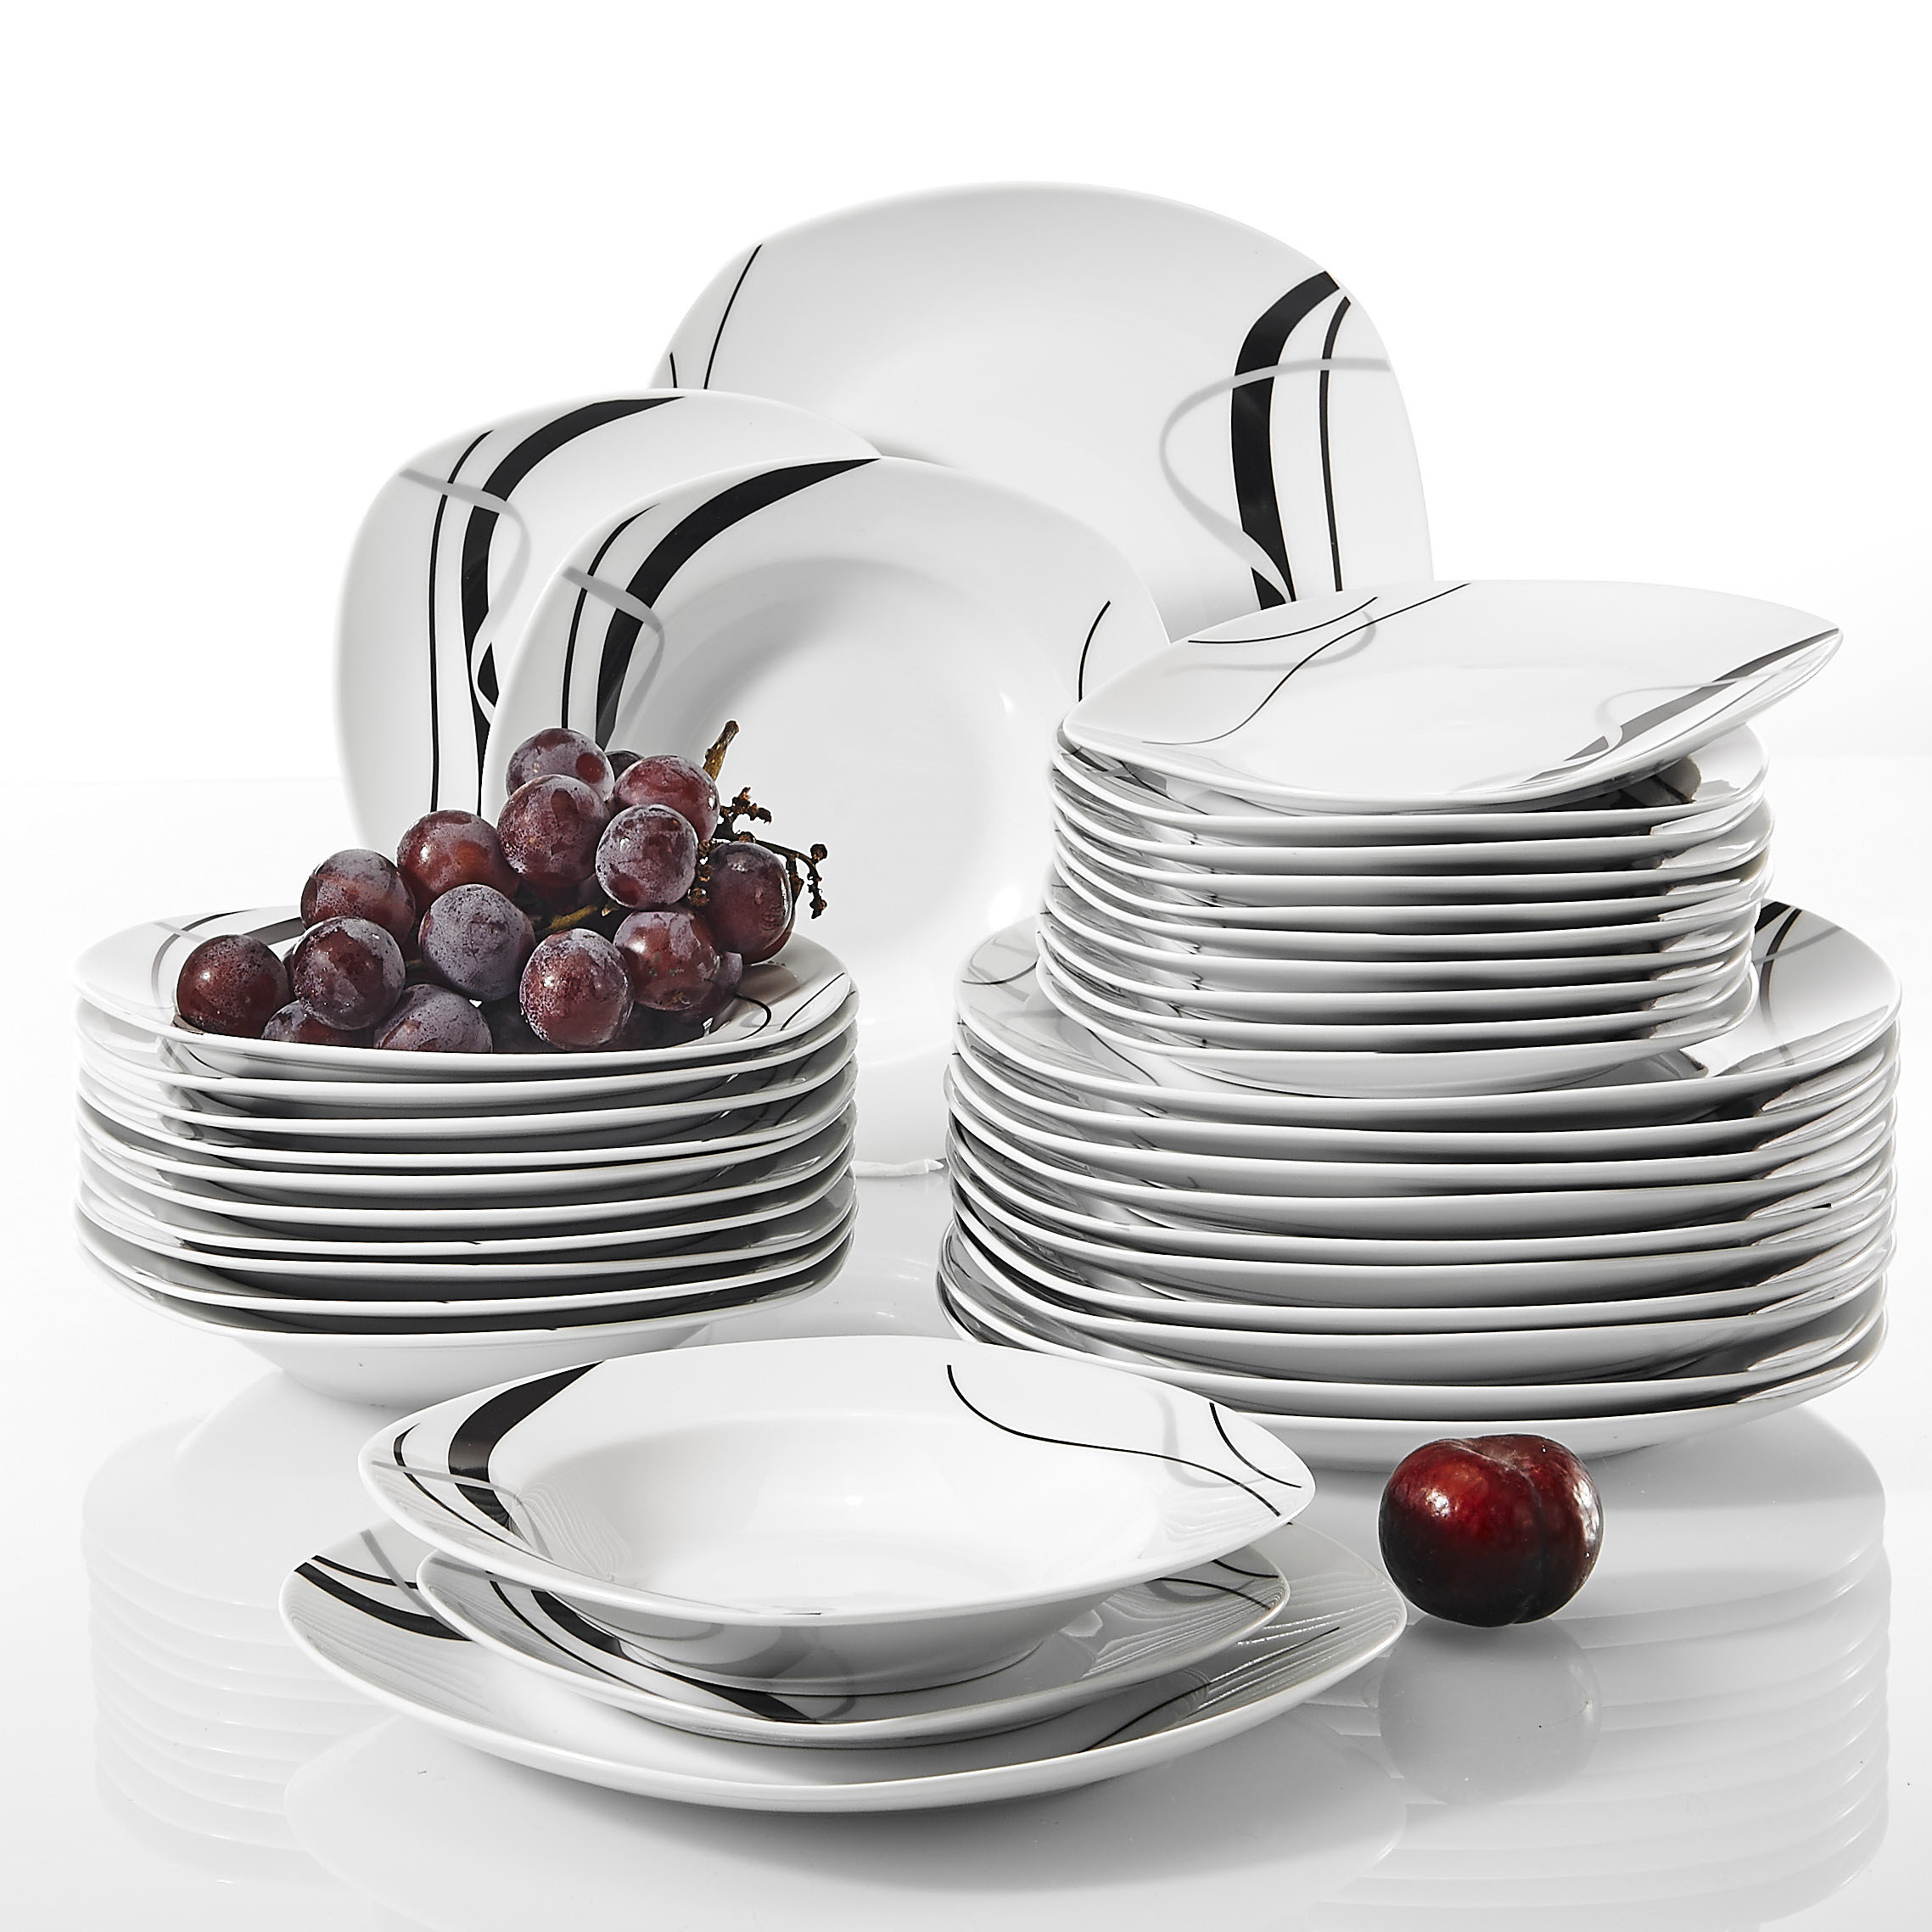 US $8.8 8% OFFVEWEET FIONA 8 Piece Porcelain Ceramic Black Line  Kitchen Tableware Dishes Plate Set with Dinner Plate,Dessert Plate,Soup